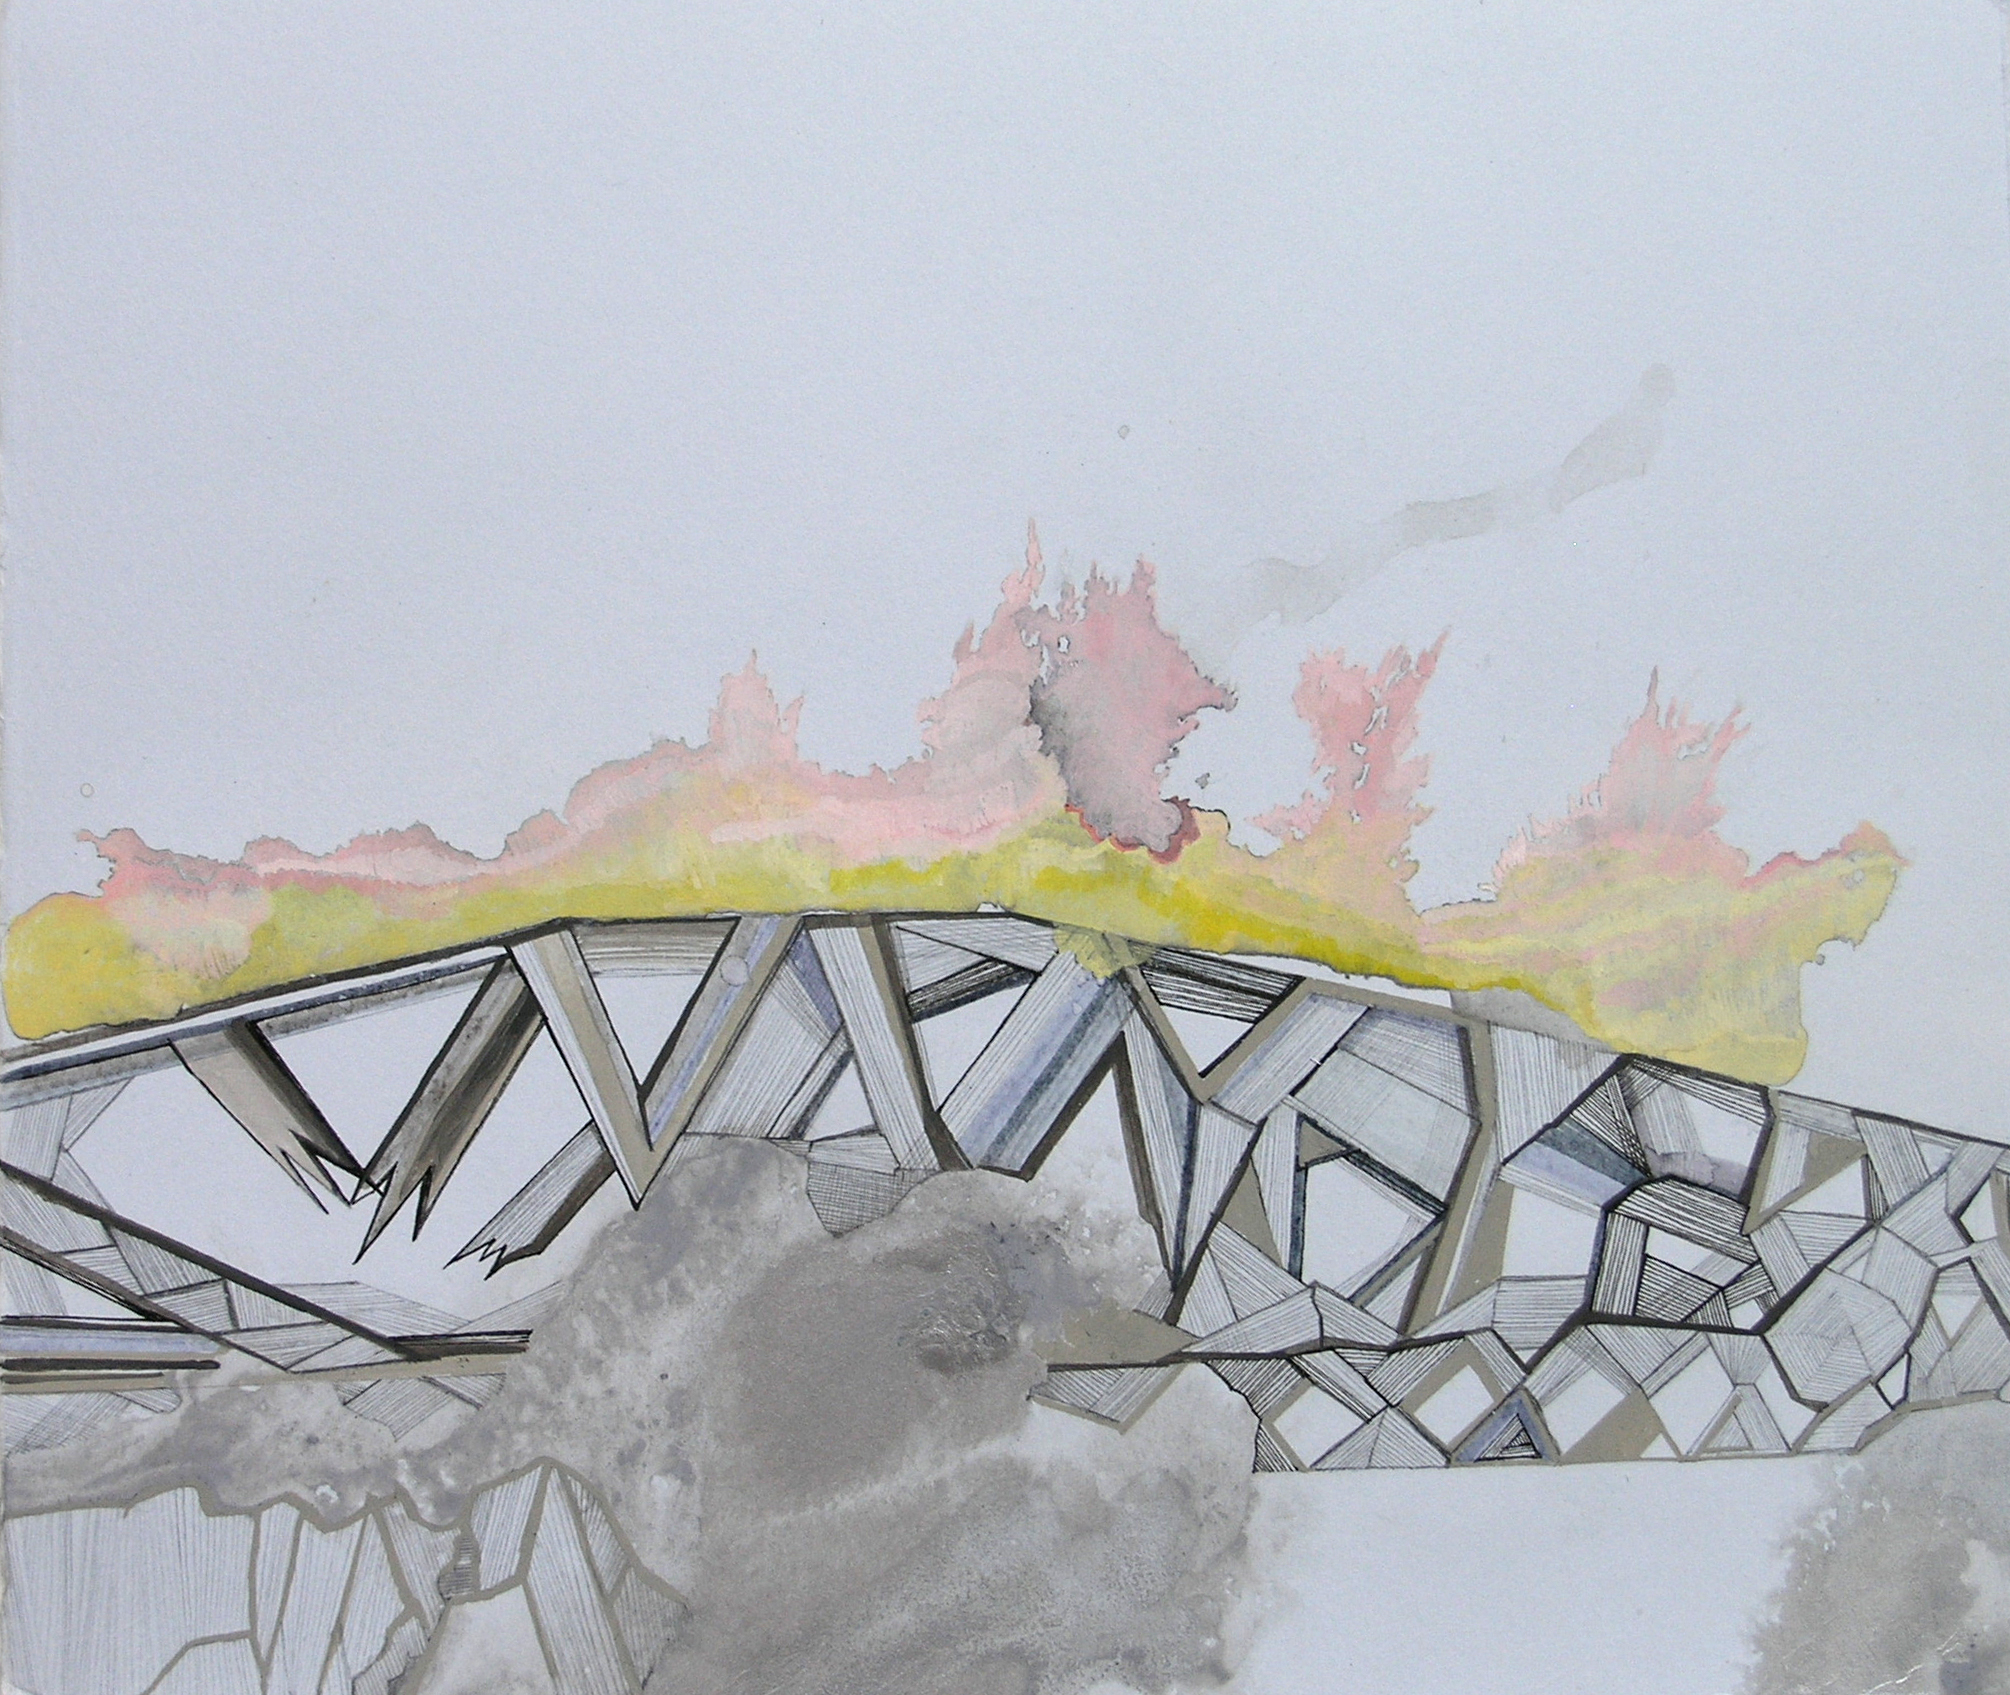 """Hughen/Starkweather,  Requiem 9  (from the Bay Bridge Project), Gouache, pencil, and ink on paper, 7.75""""h x 9""""w, 2013"""